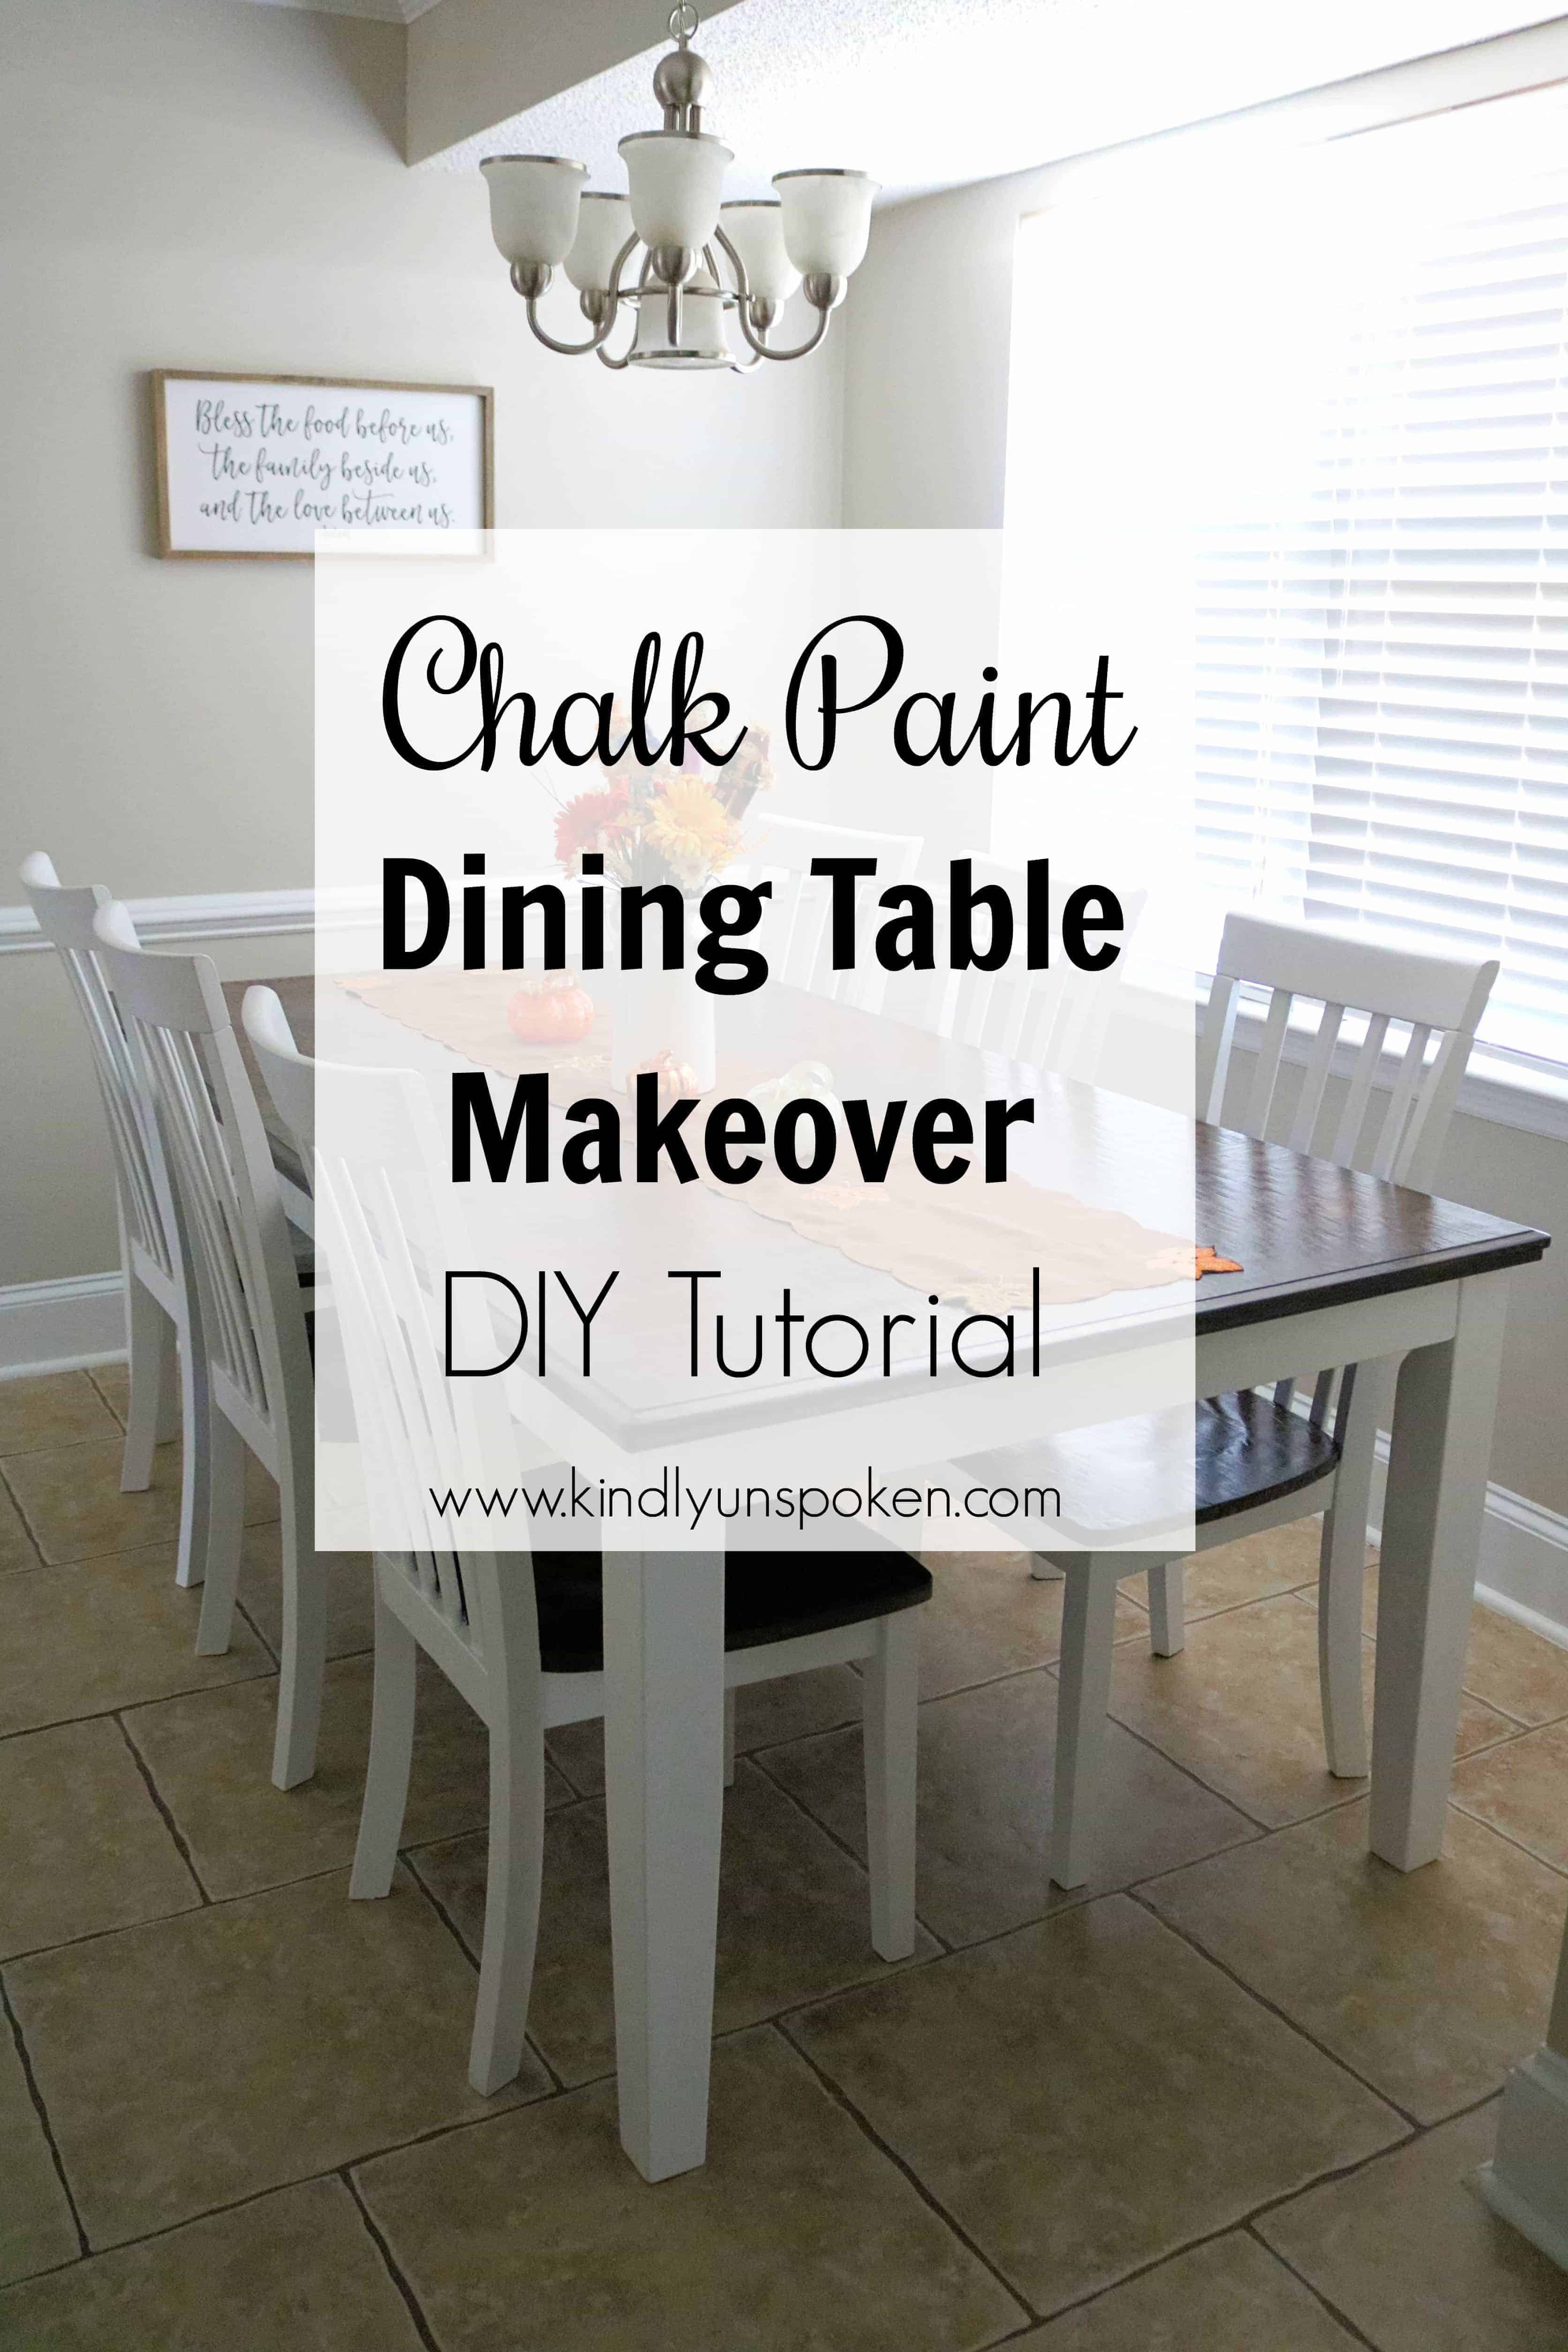 what kind of paint to use on dining room table | Chalk Paint Dining Table Makeover - Kindly Unspoken